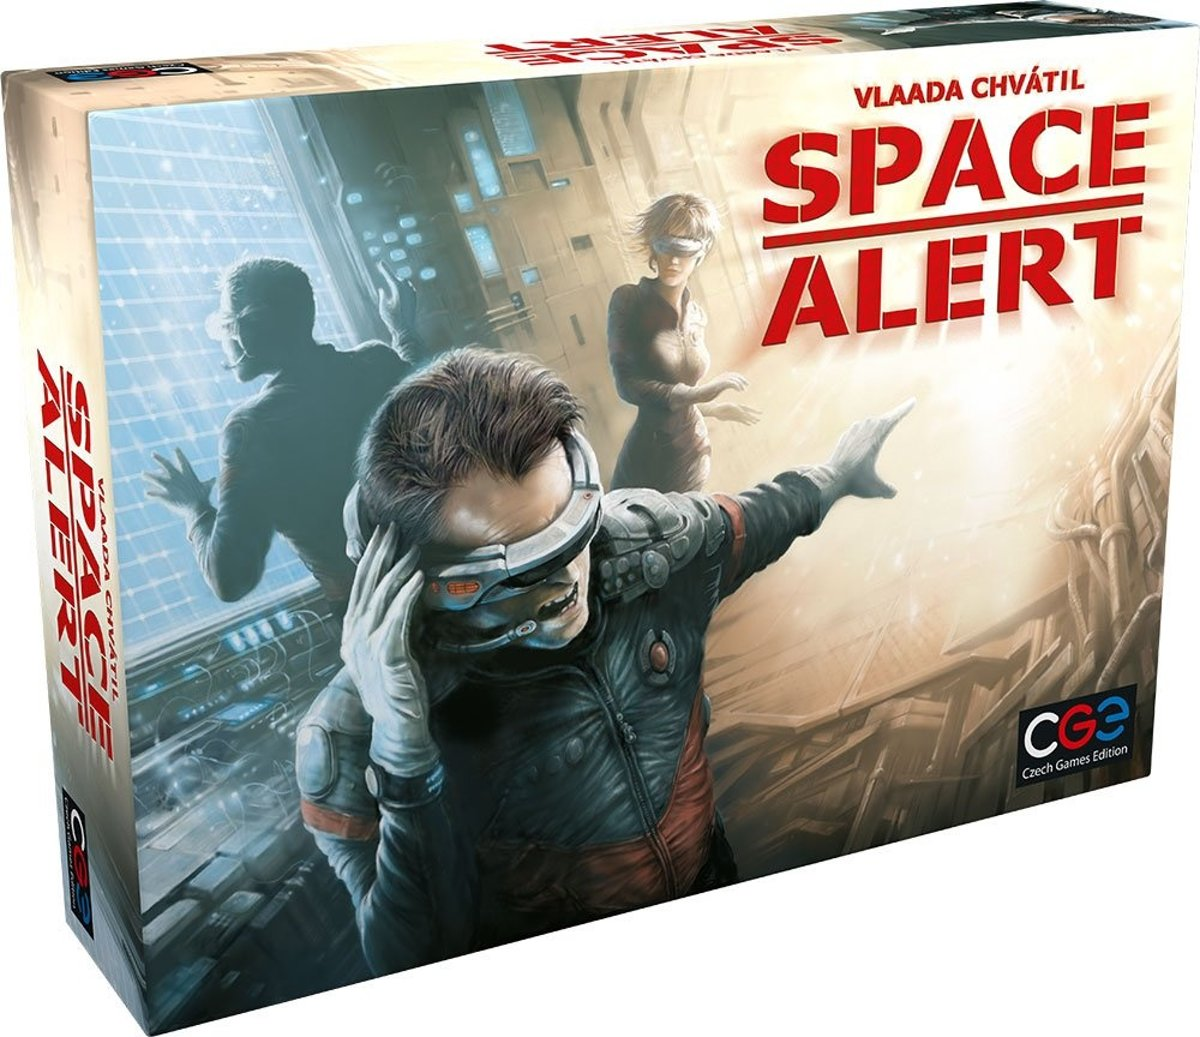 Czech Games Edition Gezelschapsspel Space Alert (en)